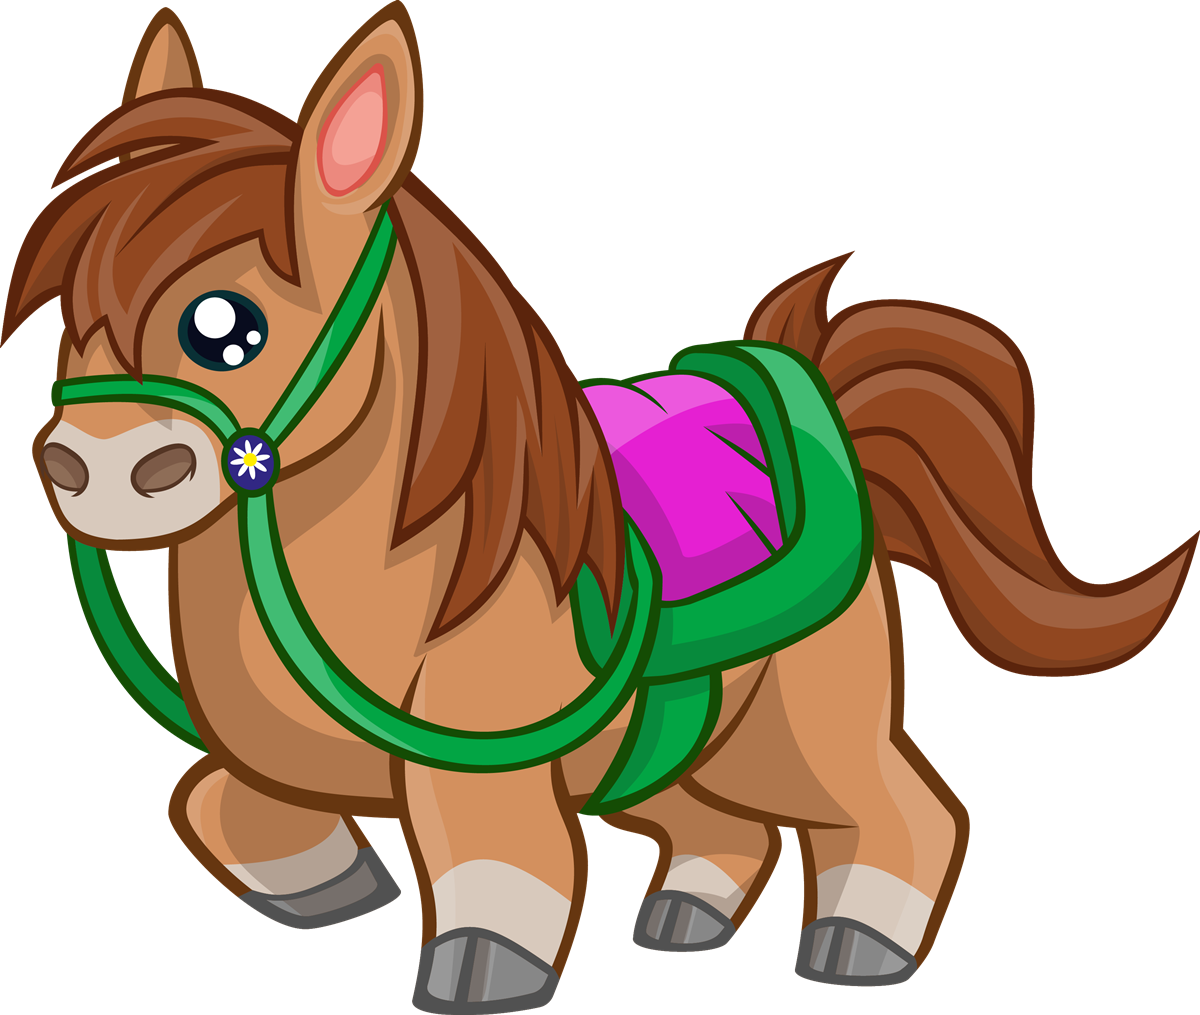 Free to use public. Horse clip art cute banner download